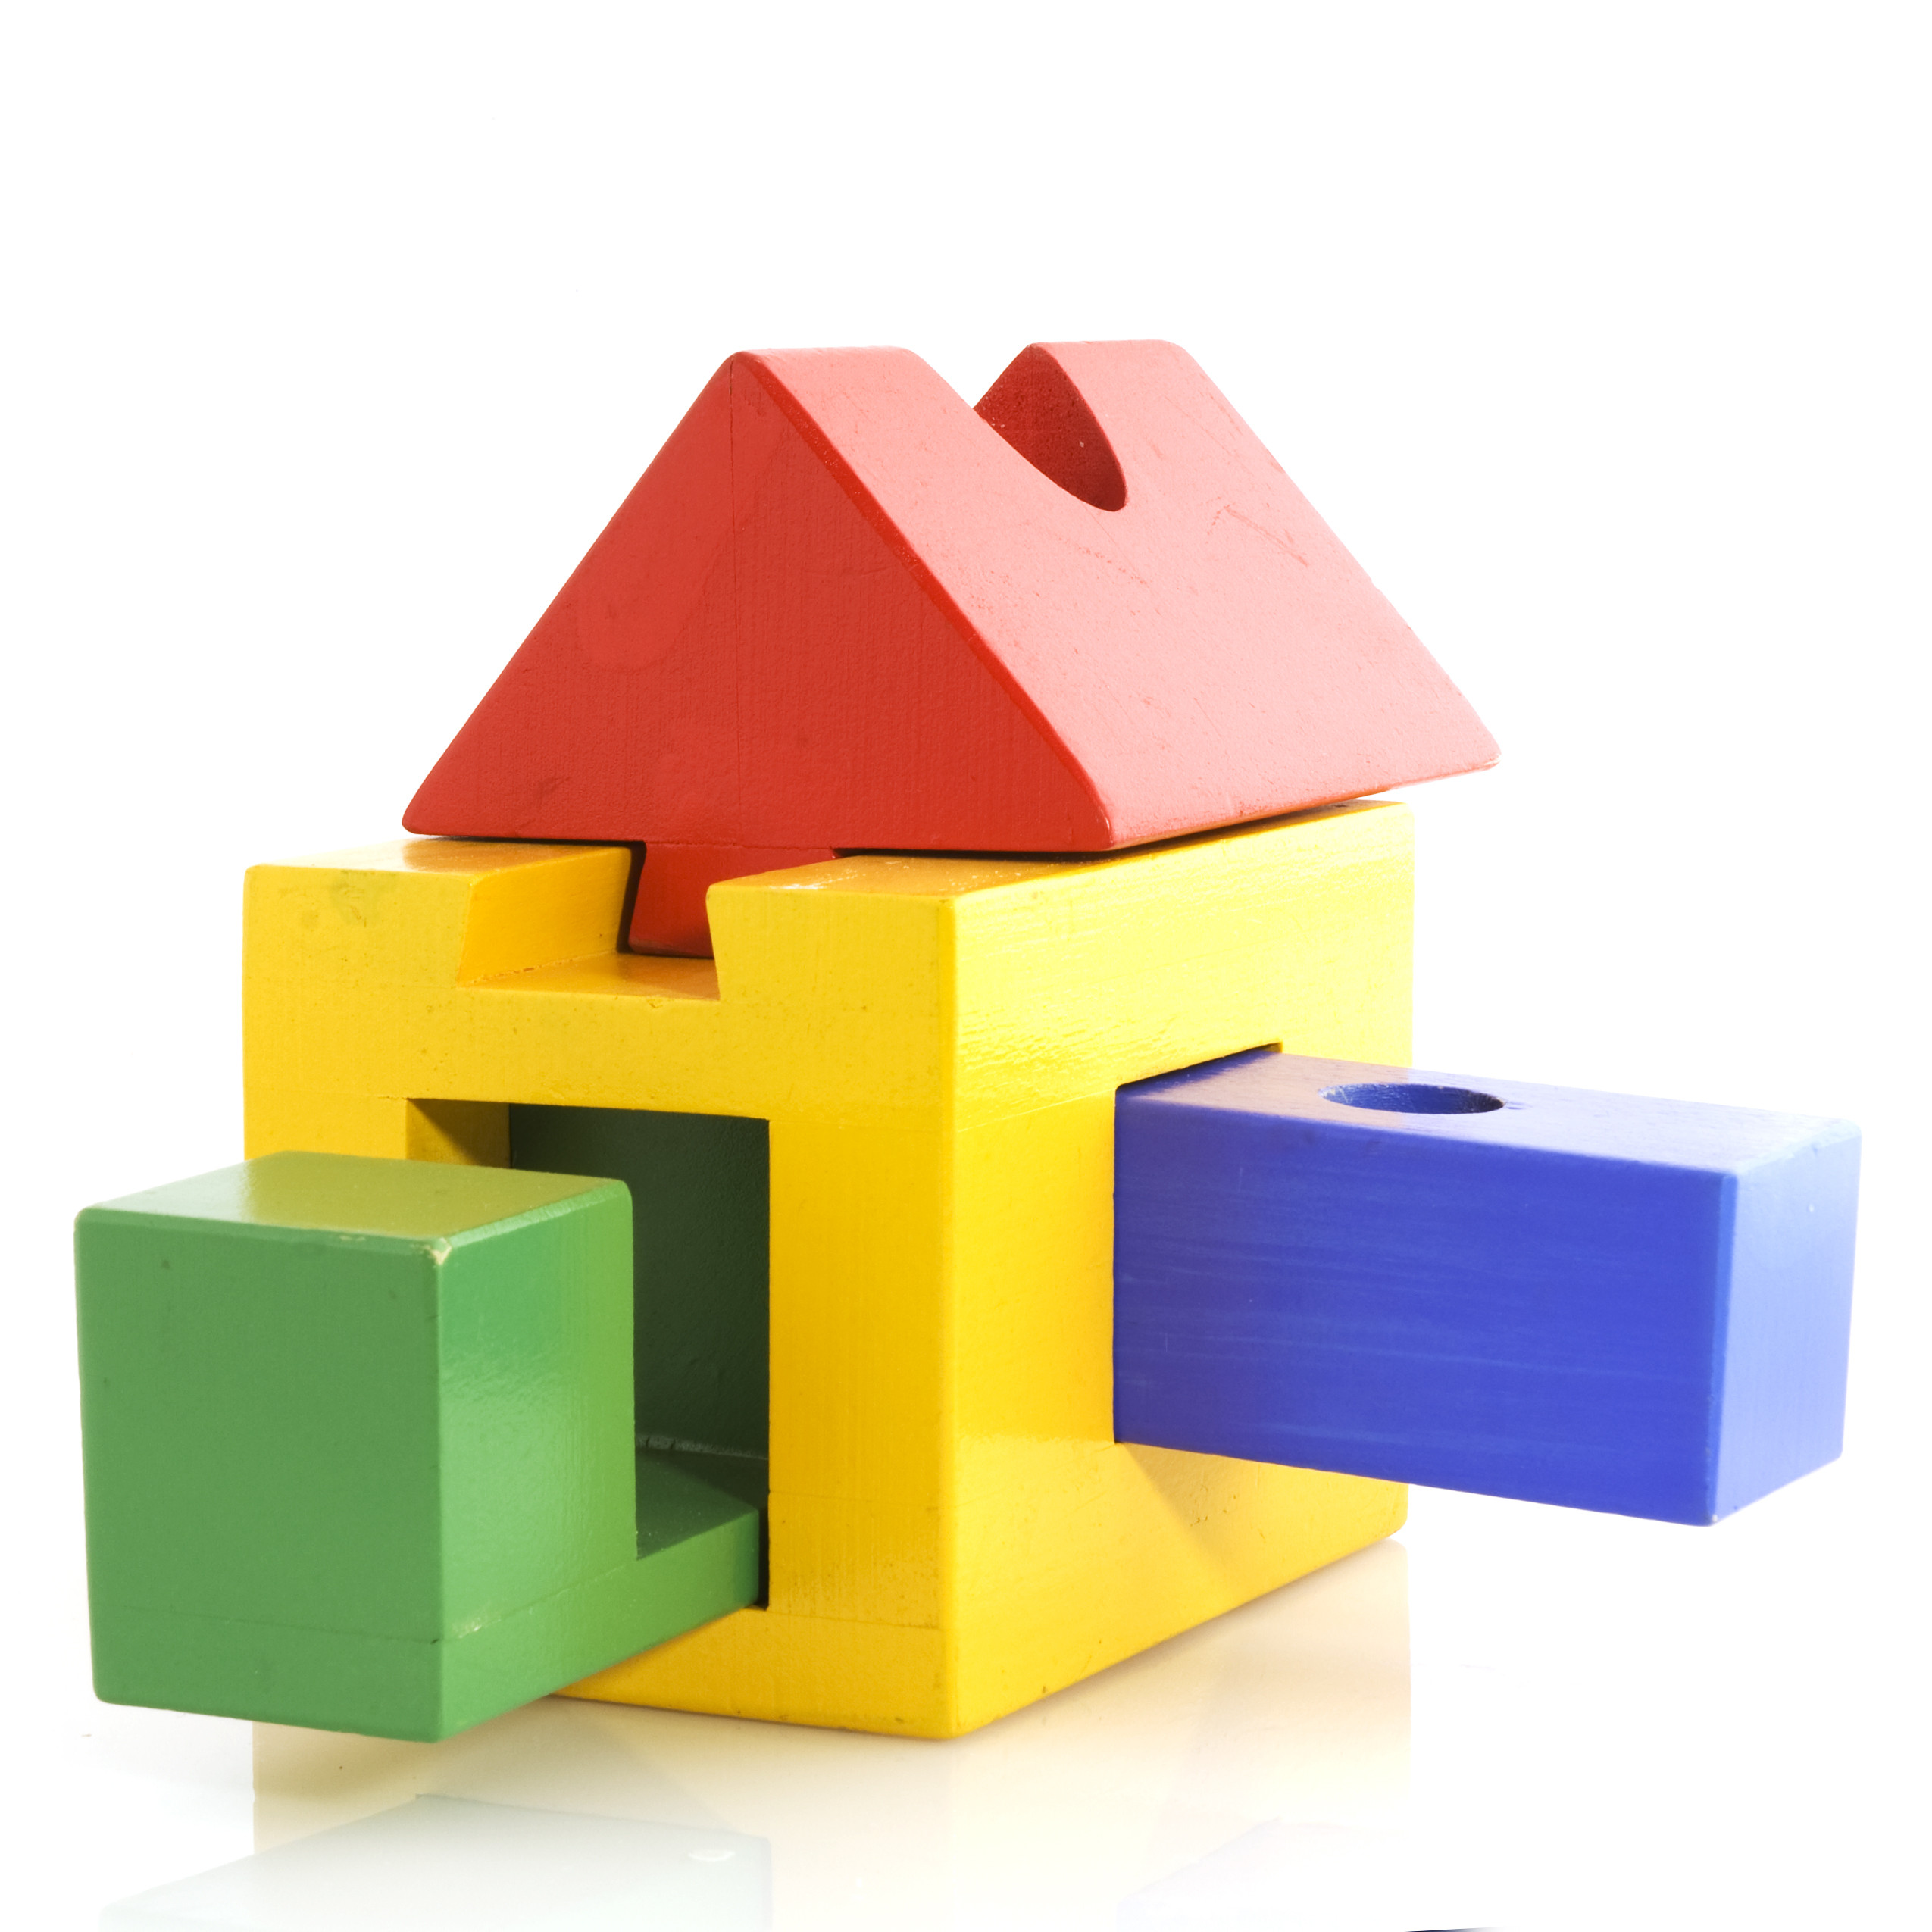 2550x2550 Clipart Block House Building Blocks Apps Clip Art Library Yanhe